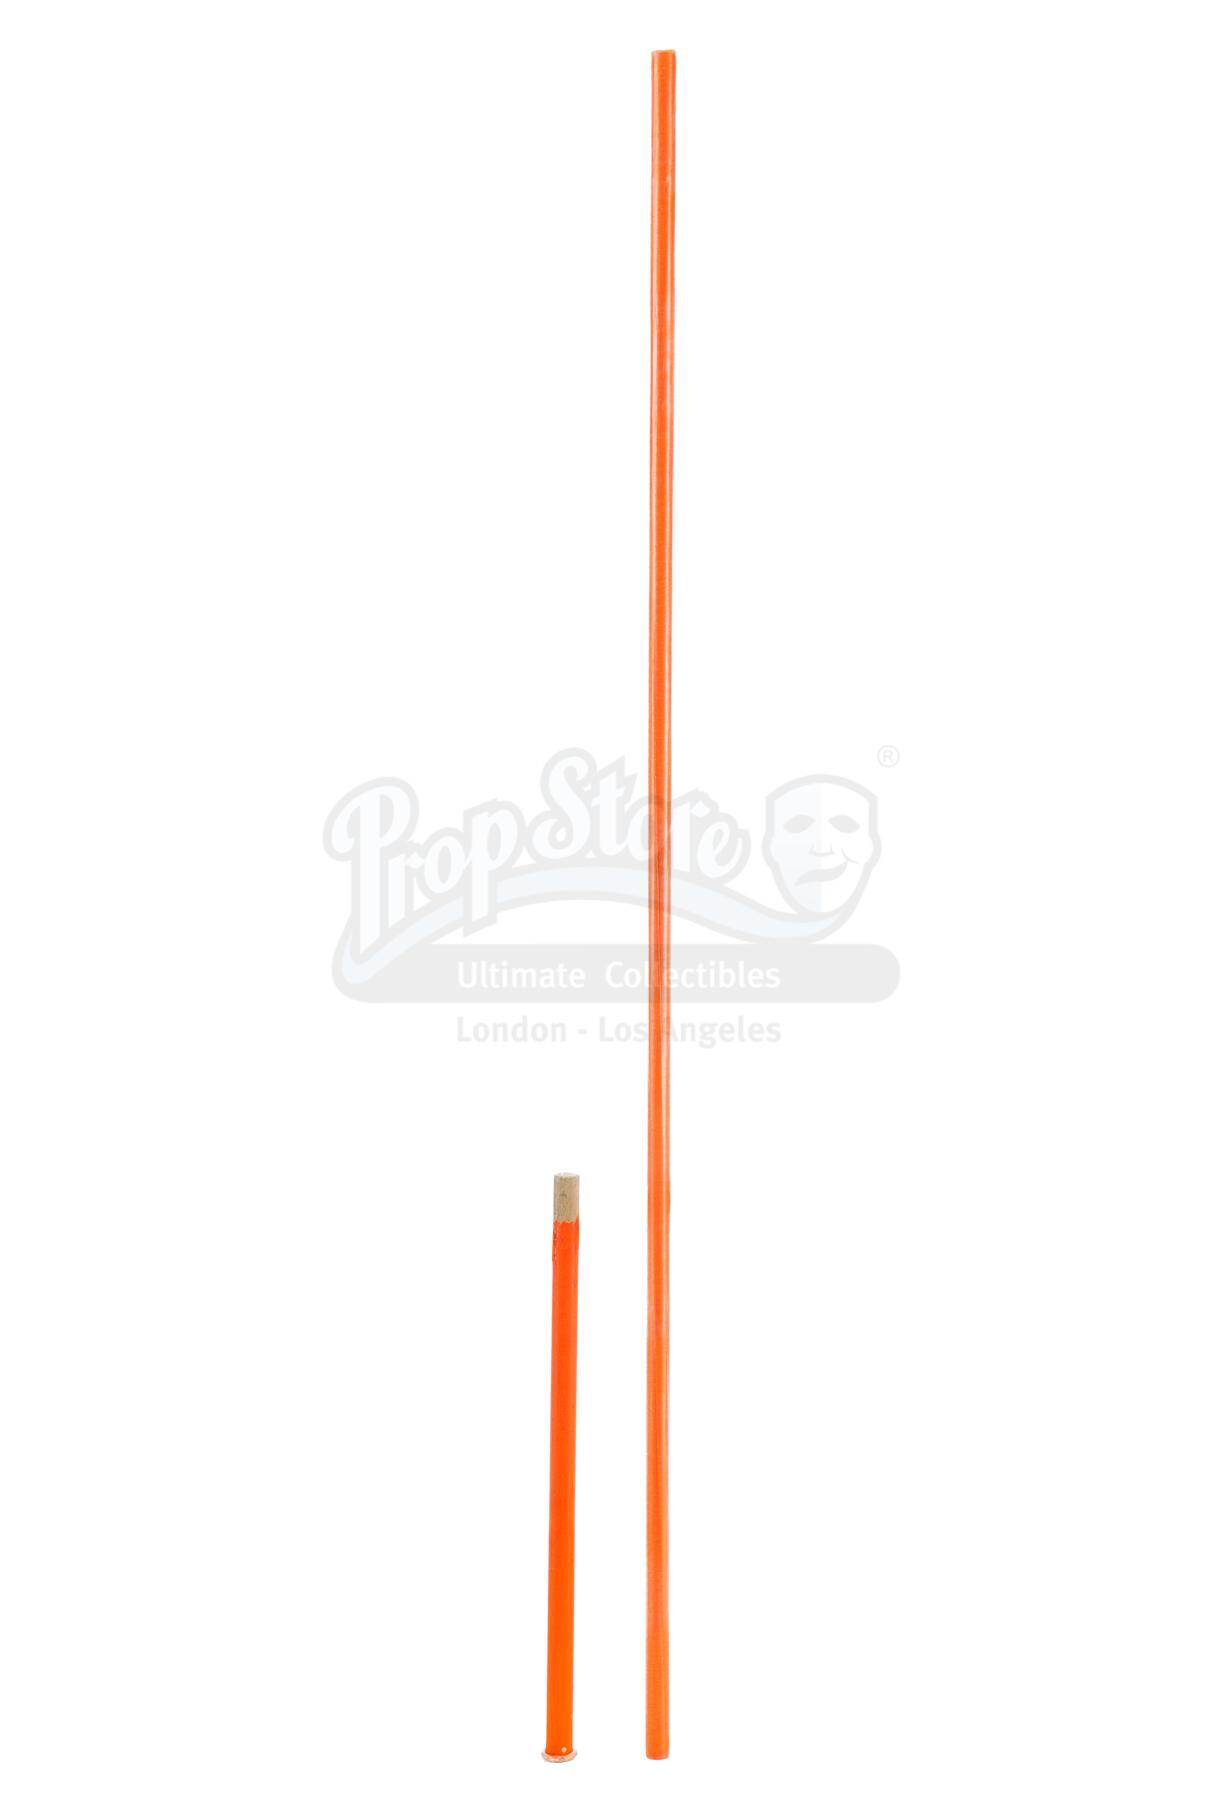 Lot # 1138: STAR WARS - EP III - REVENGE OF THE SITH - Pair of production lightsaber blades